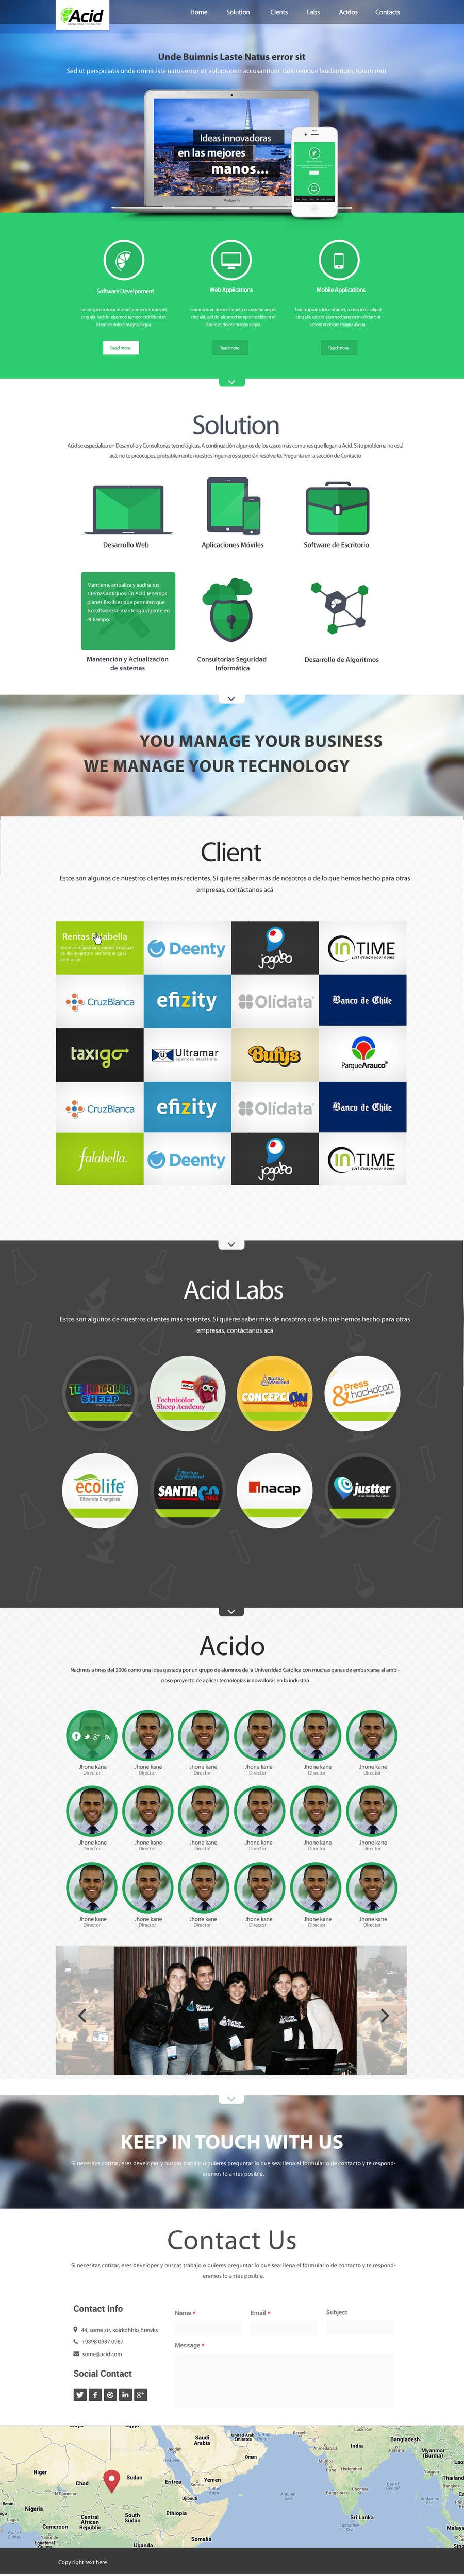 #48 for Develop a Corporate Identity for Acid Labs by SadunKodagoda